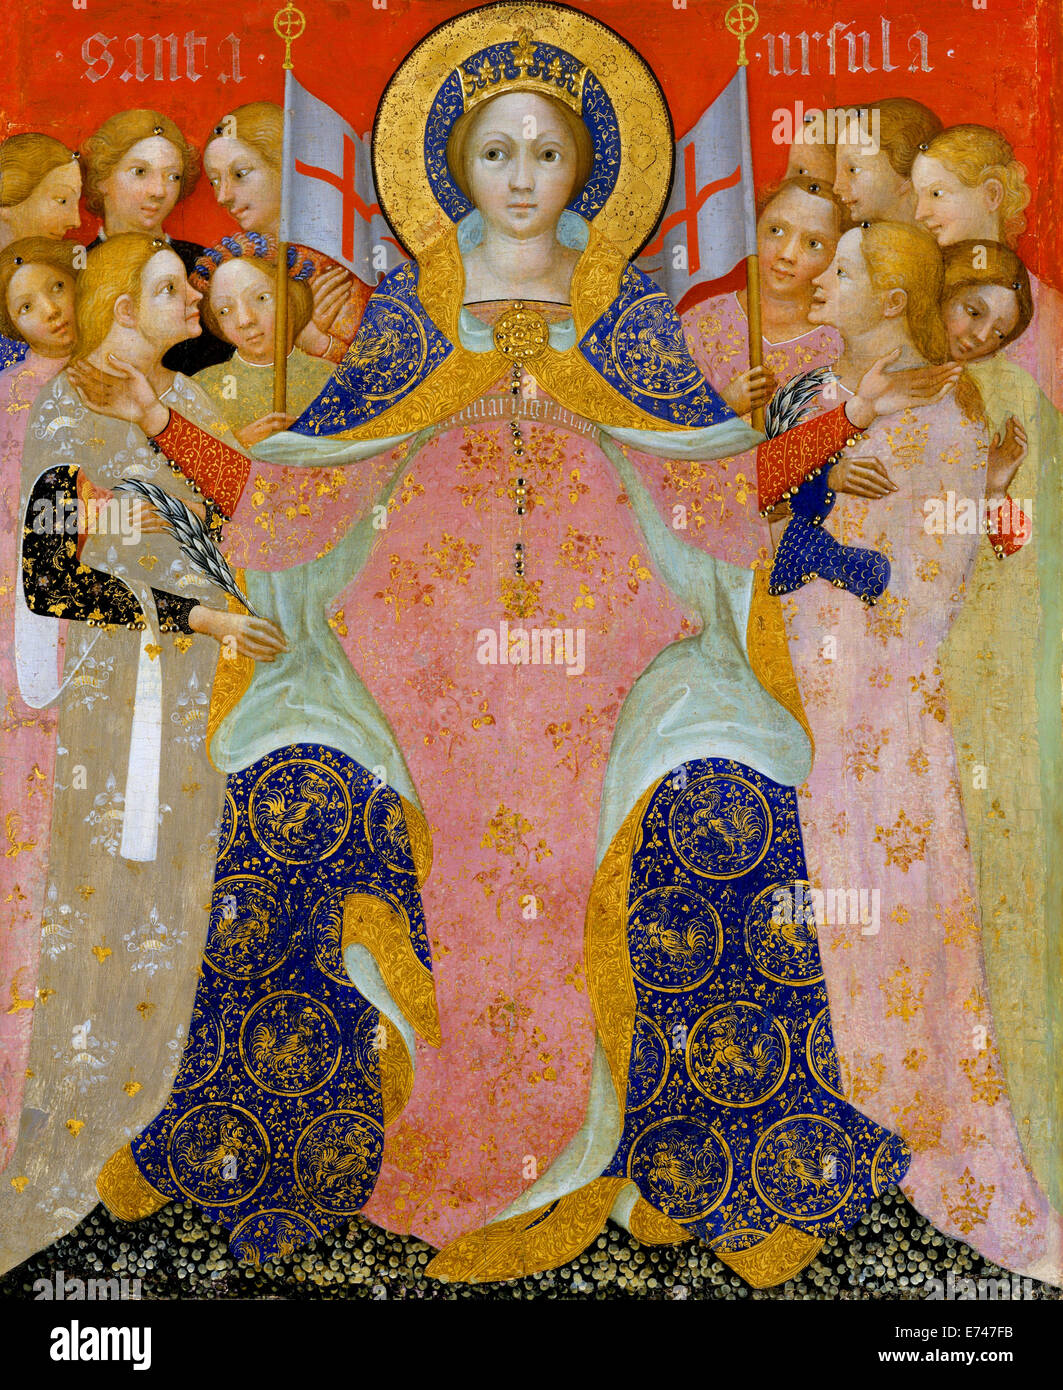 St. Ursula and Her Maidens - by Niccolo di Pietro, 1410 - Stock Image